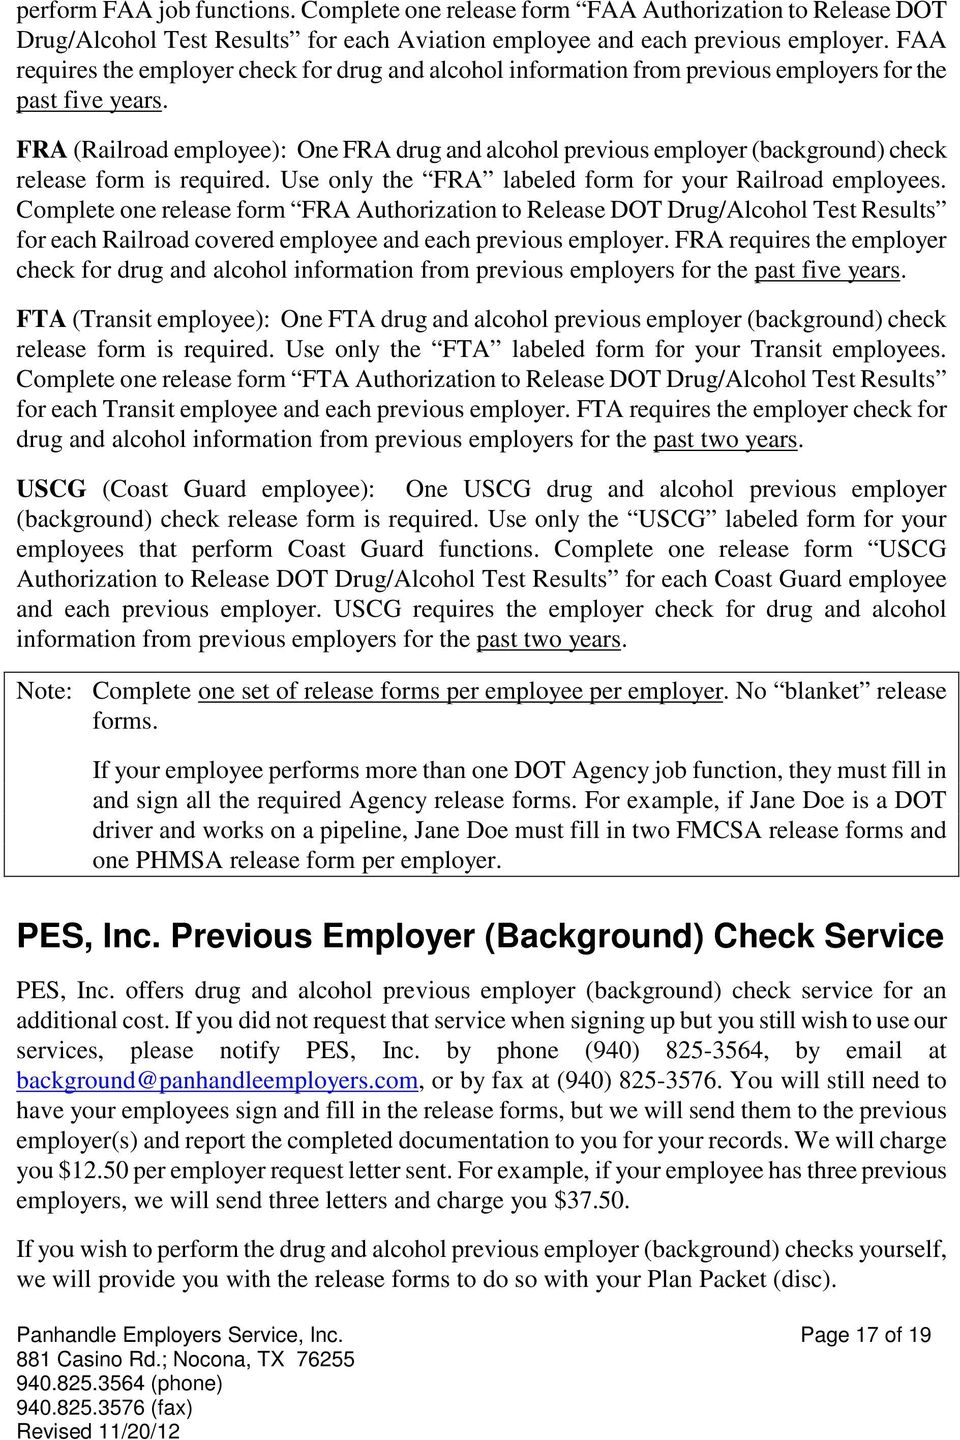 FRA (Railroad employee): One FRA drug and alcohol previous employer (background) check release form is required. Use only the FRA labeled form for your Railroad employees.